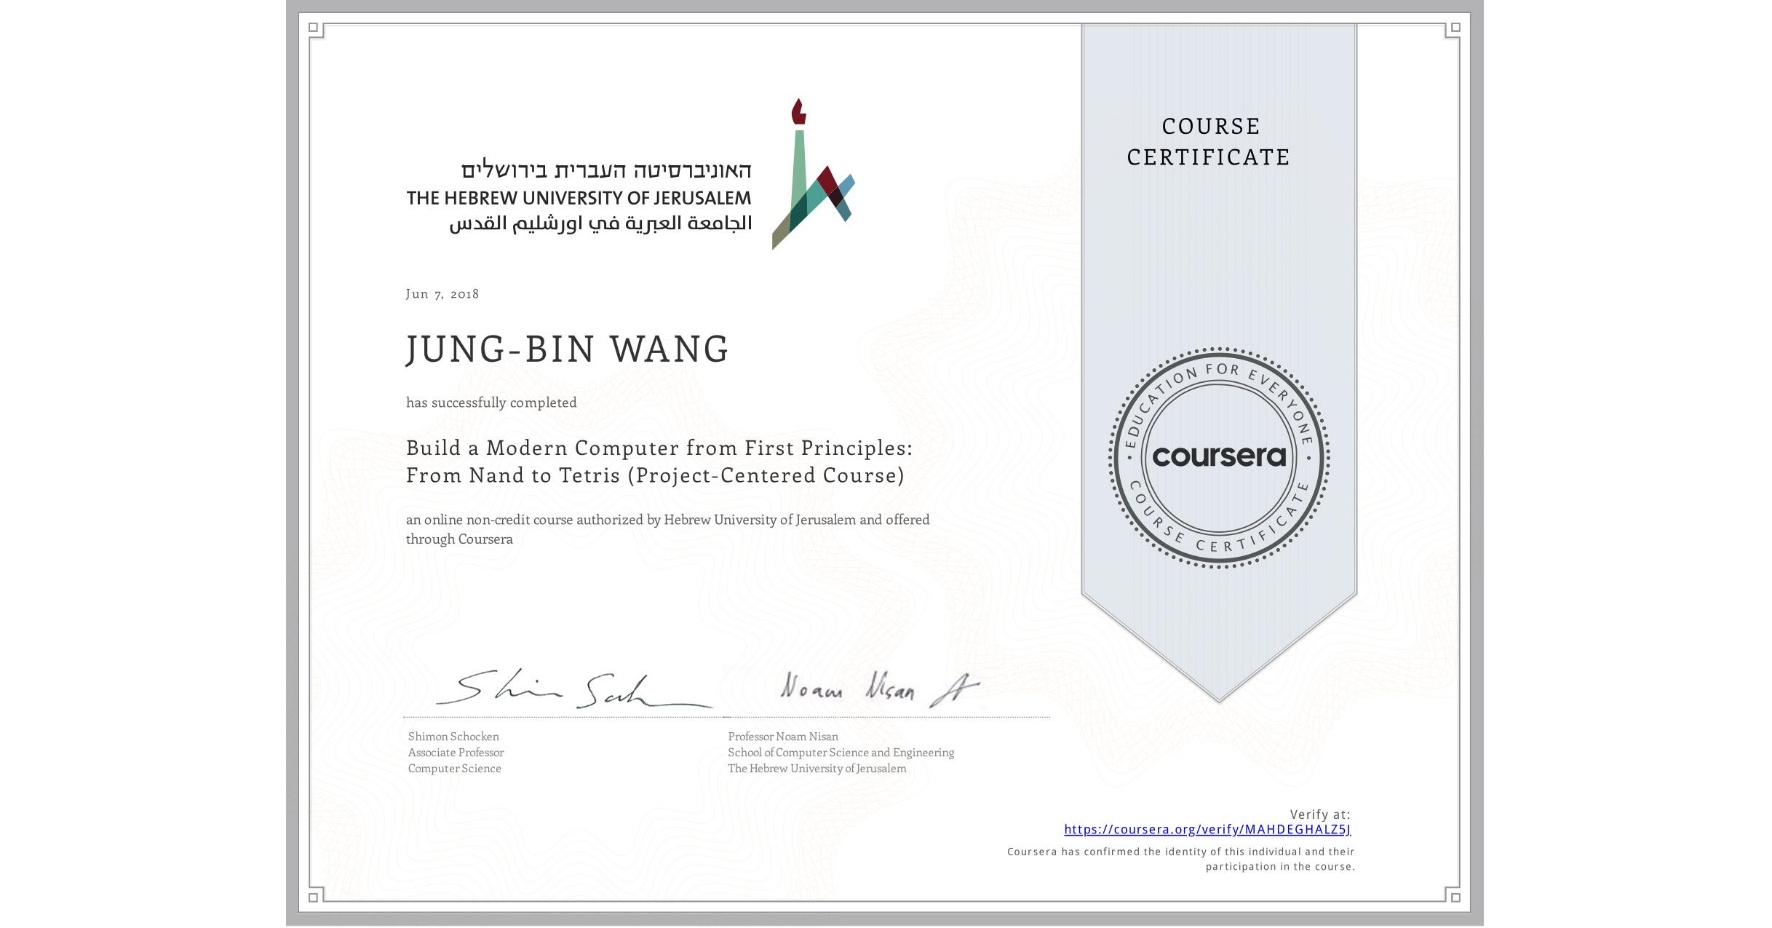 View certificate for JUNG-BIN WANG, Build a Modern Computer from First Principles: From Nand to Tetris (Project-Centered Course), an online non-credit course authorized by Hebrew University of Jerusalem and offered through Coursera